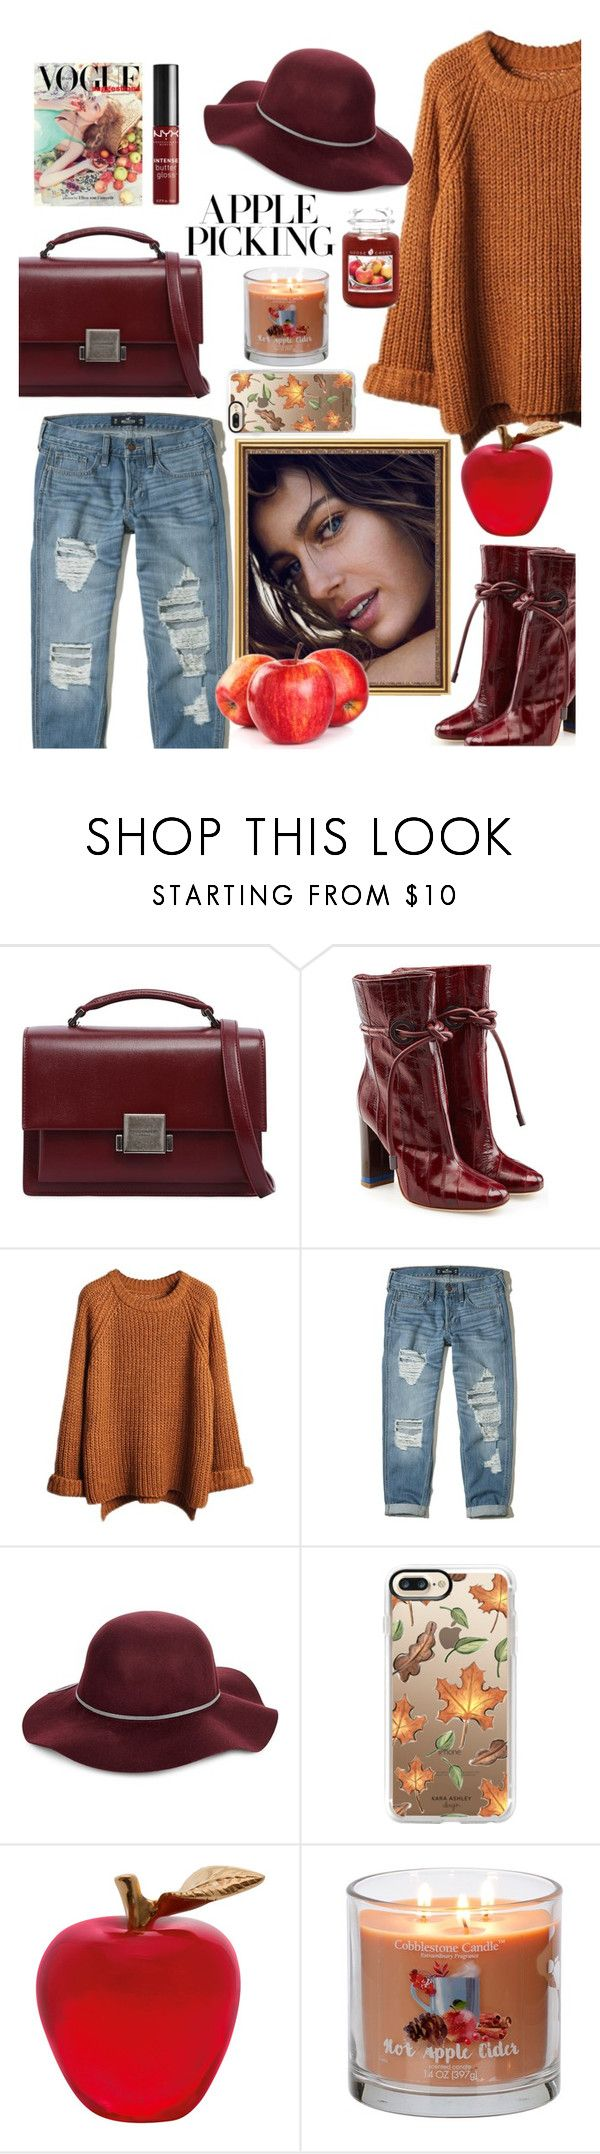 """""""Apple picking"""" by perriemaynard on Polyvore featuring Yves Saint Laurent, Malone Souliers, Hollister Co., San Diego Hat Co., Casetify, Daum and NYX"""